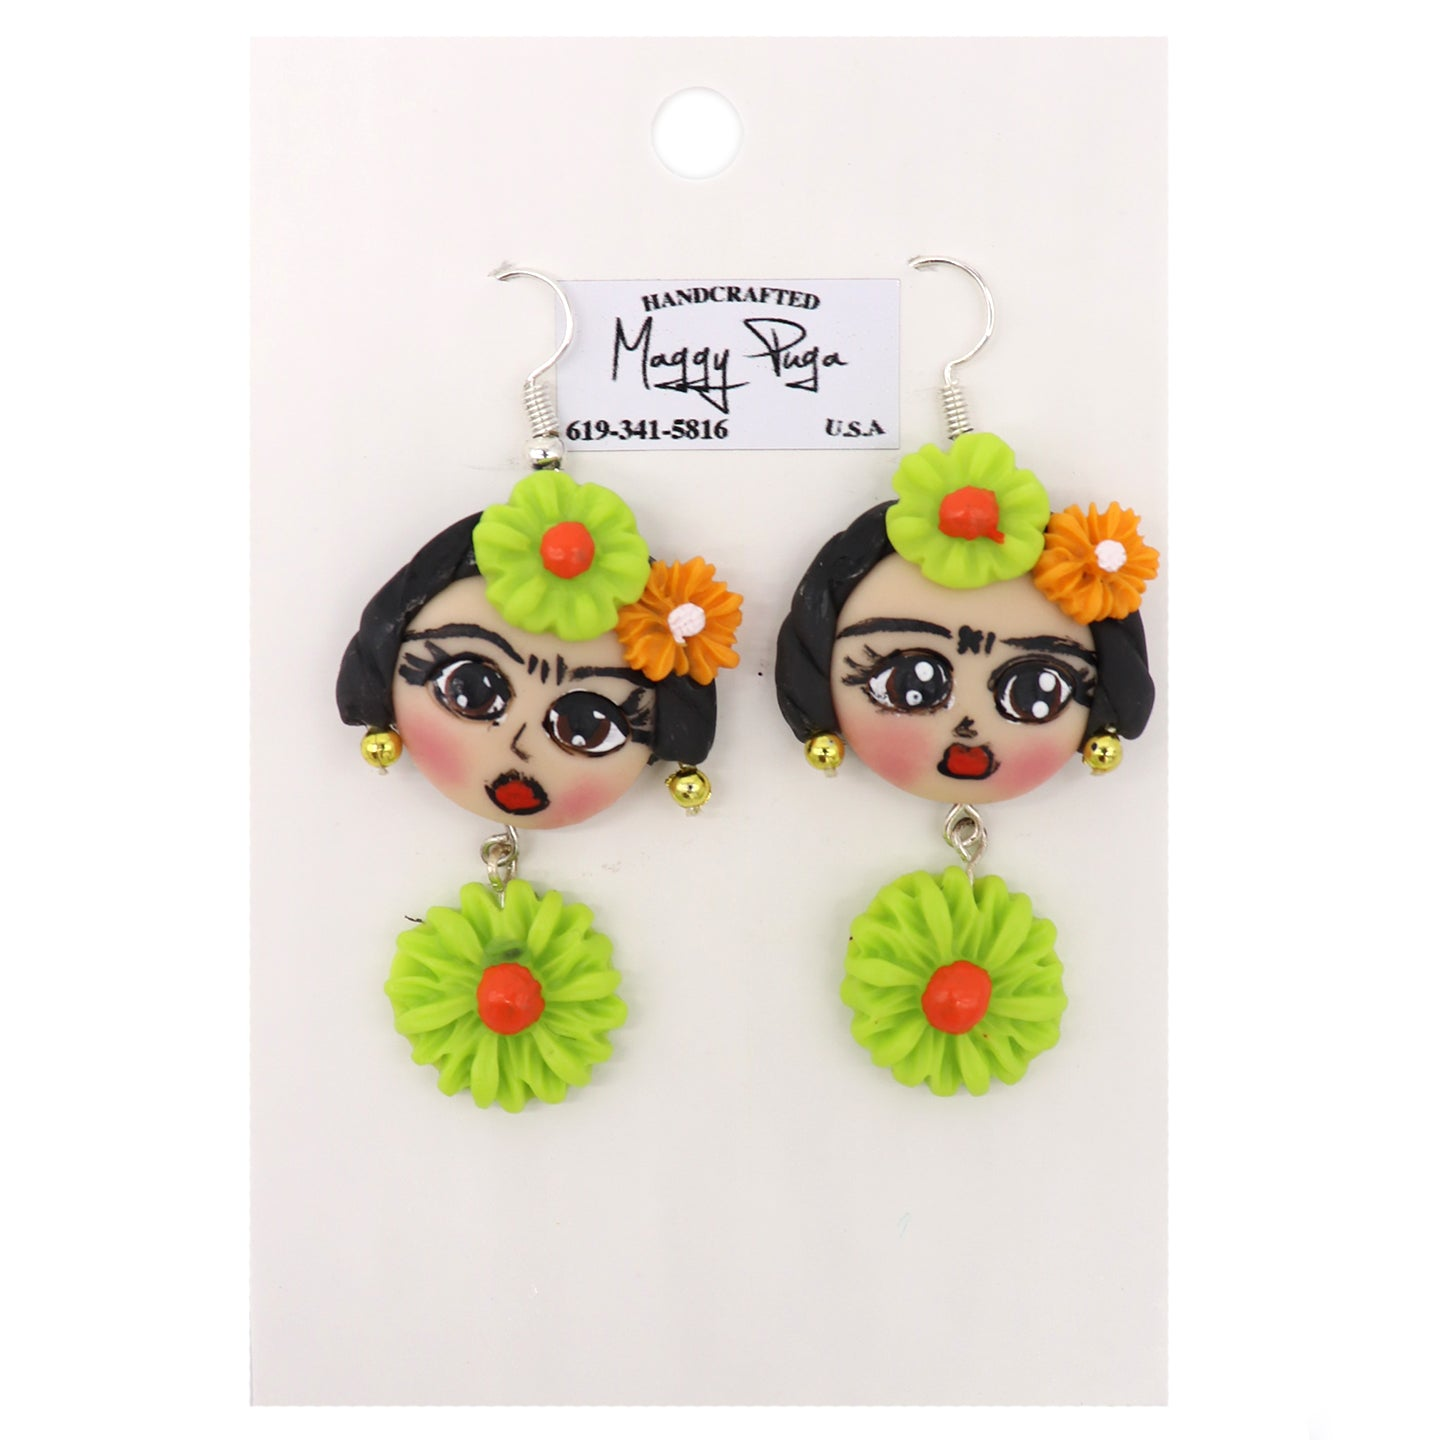 Handcrafted Women Earrings featuring Frida Kahlo with her dark hair, flowers, and gold earrings, and a hanging flower. Handmade with love by small shop Maggy Puga and Sold by SDTrading Co.